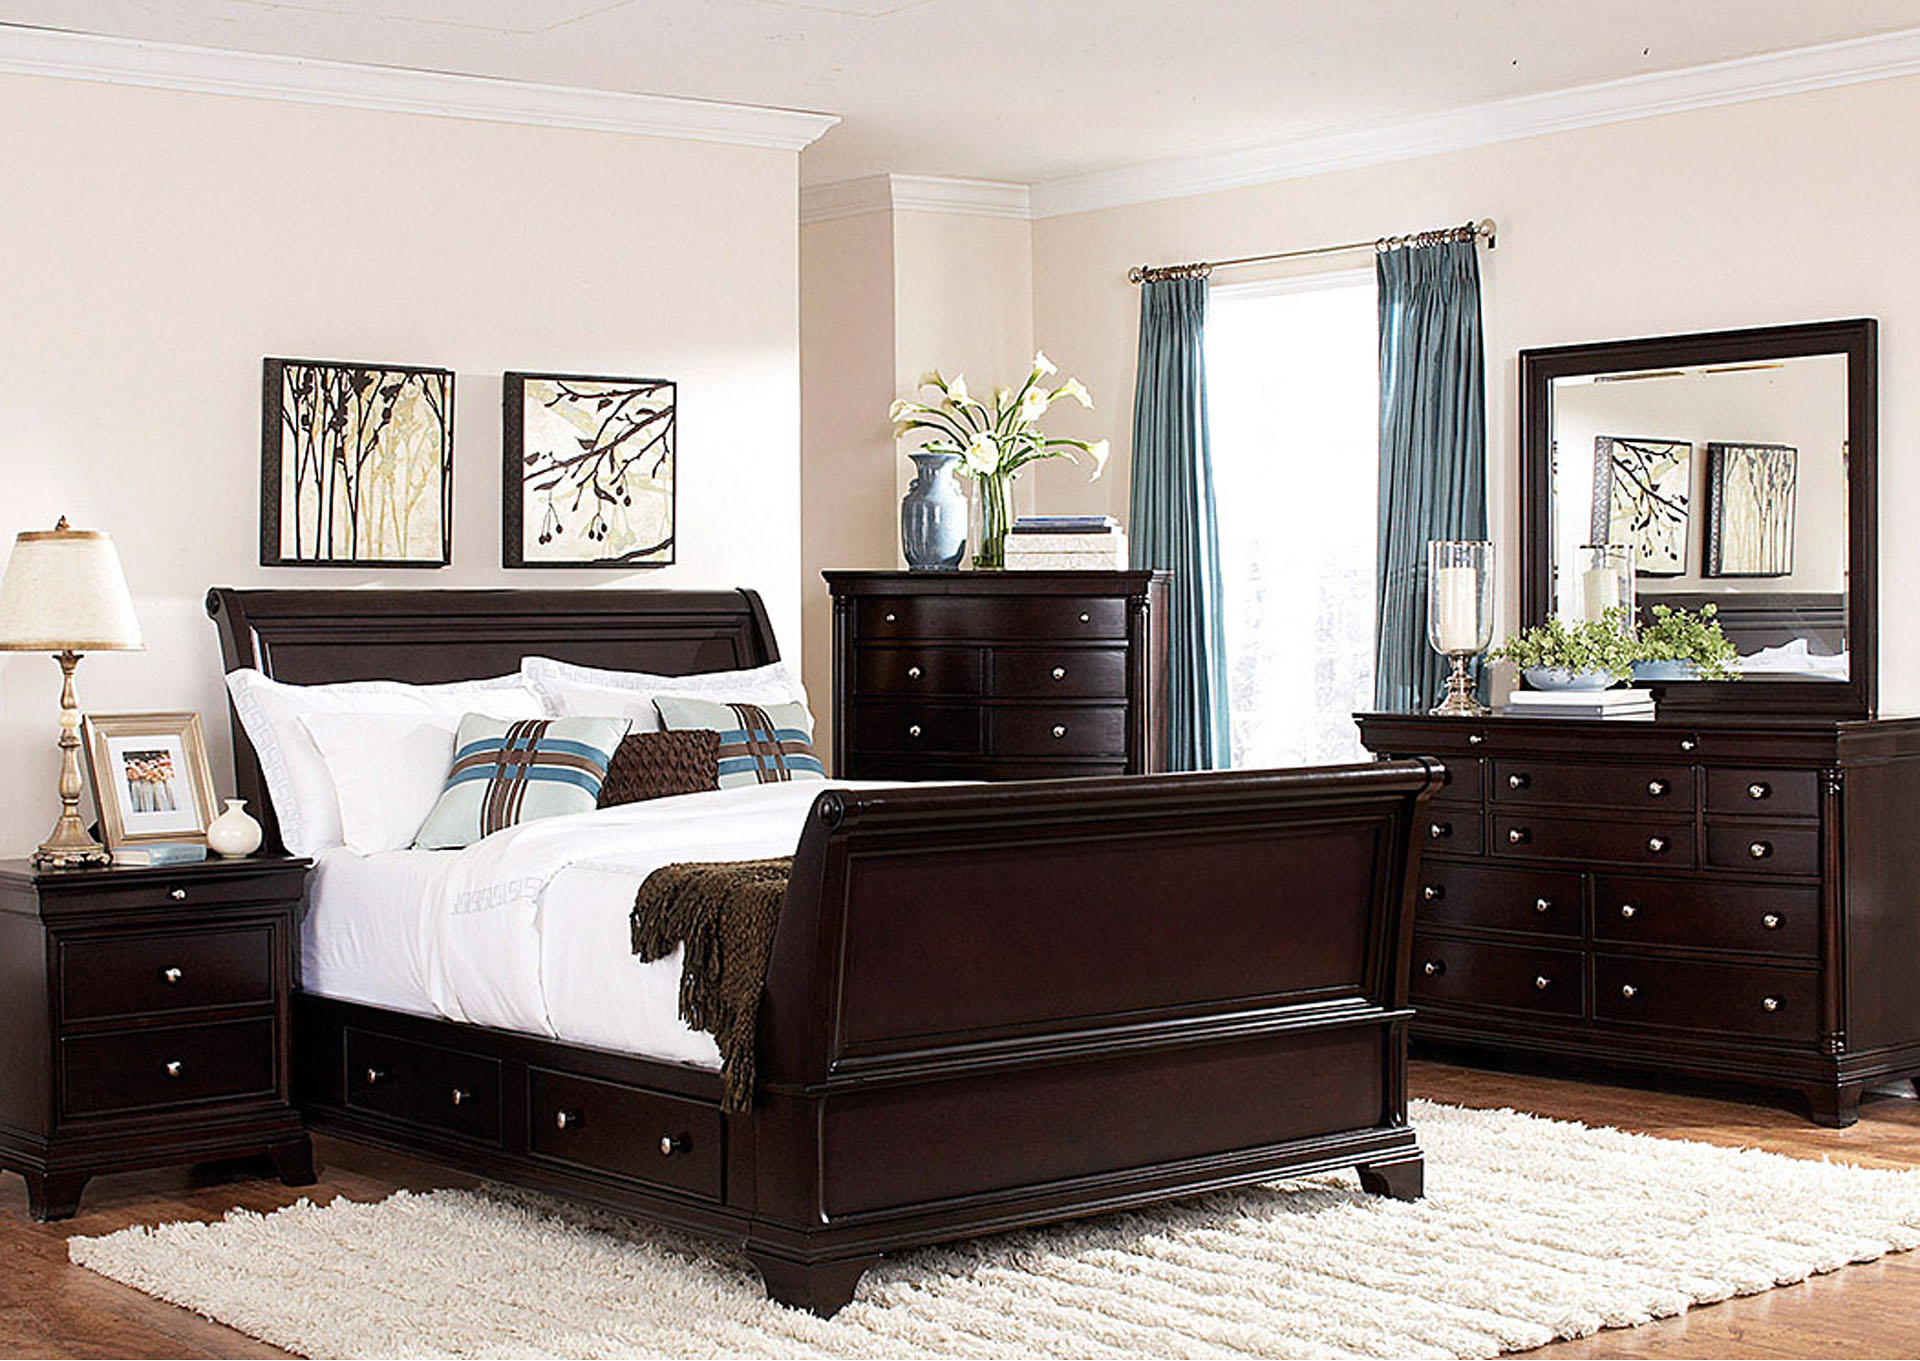 Inglewood Espresso Queen Sleigh Platform Bed w/ Dresser, Rectangular Mirror, Drawer Chest and Nightstand,Homelegance